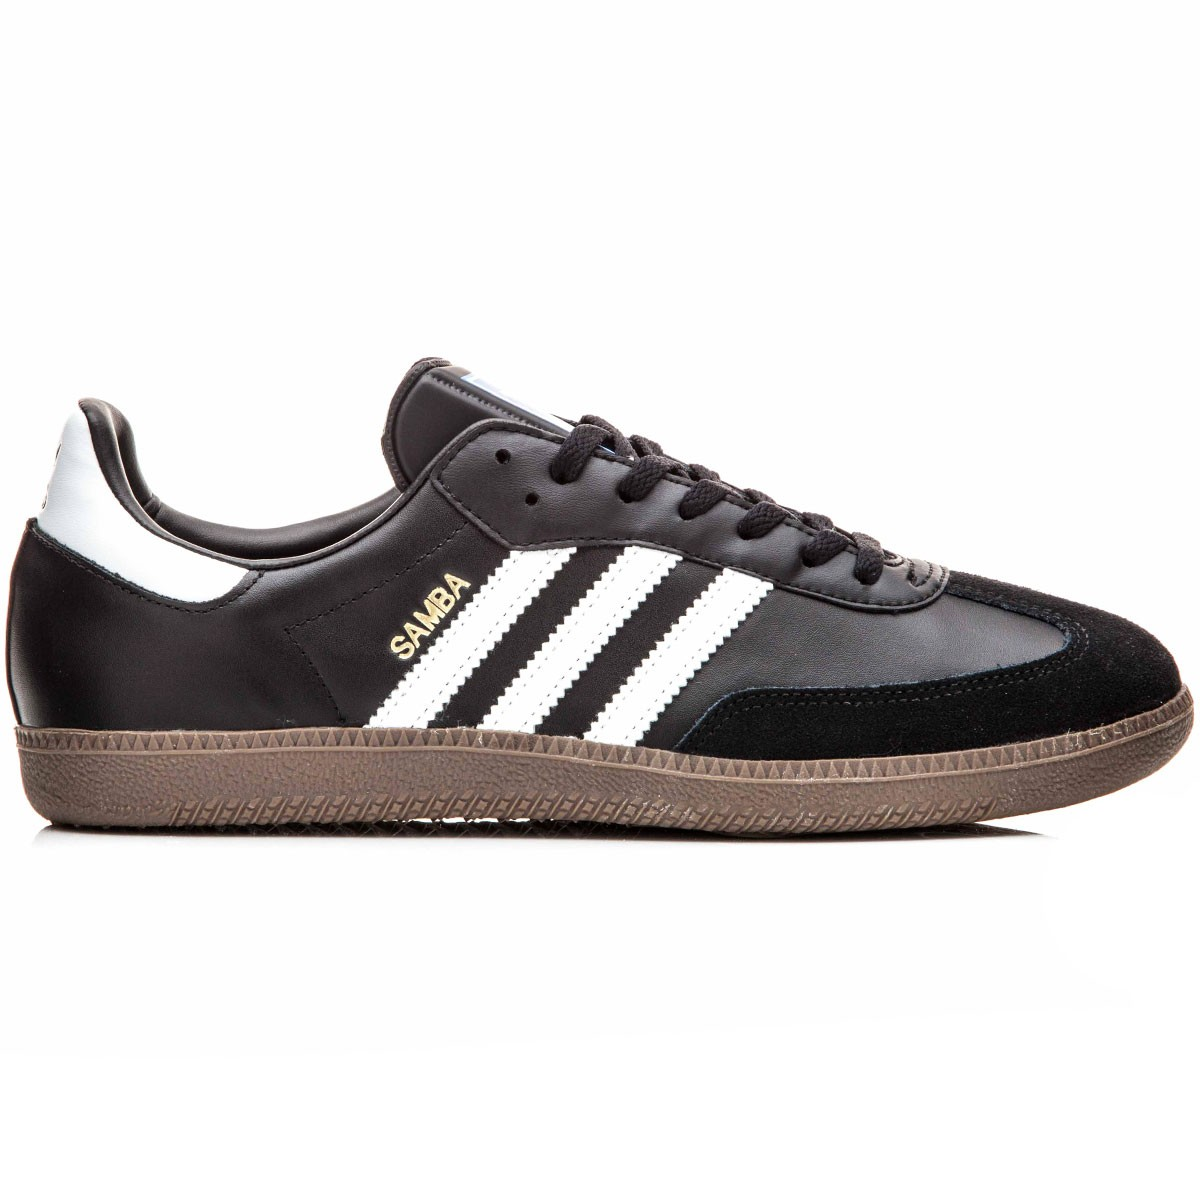 Adidas Samba Shoes BlackWhiteGum 6.0